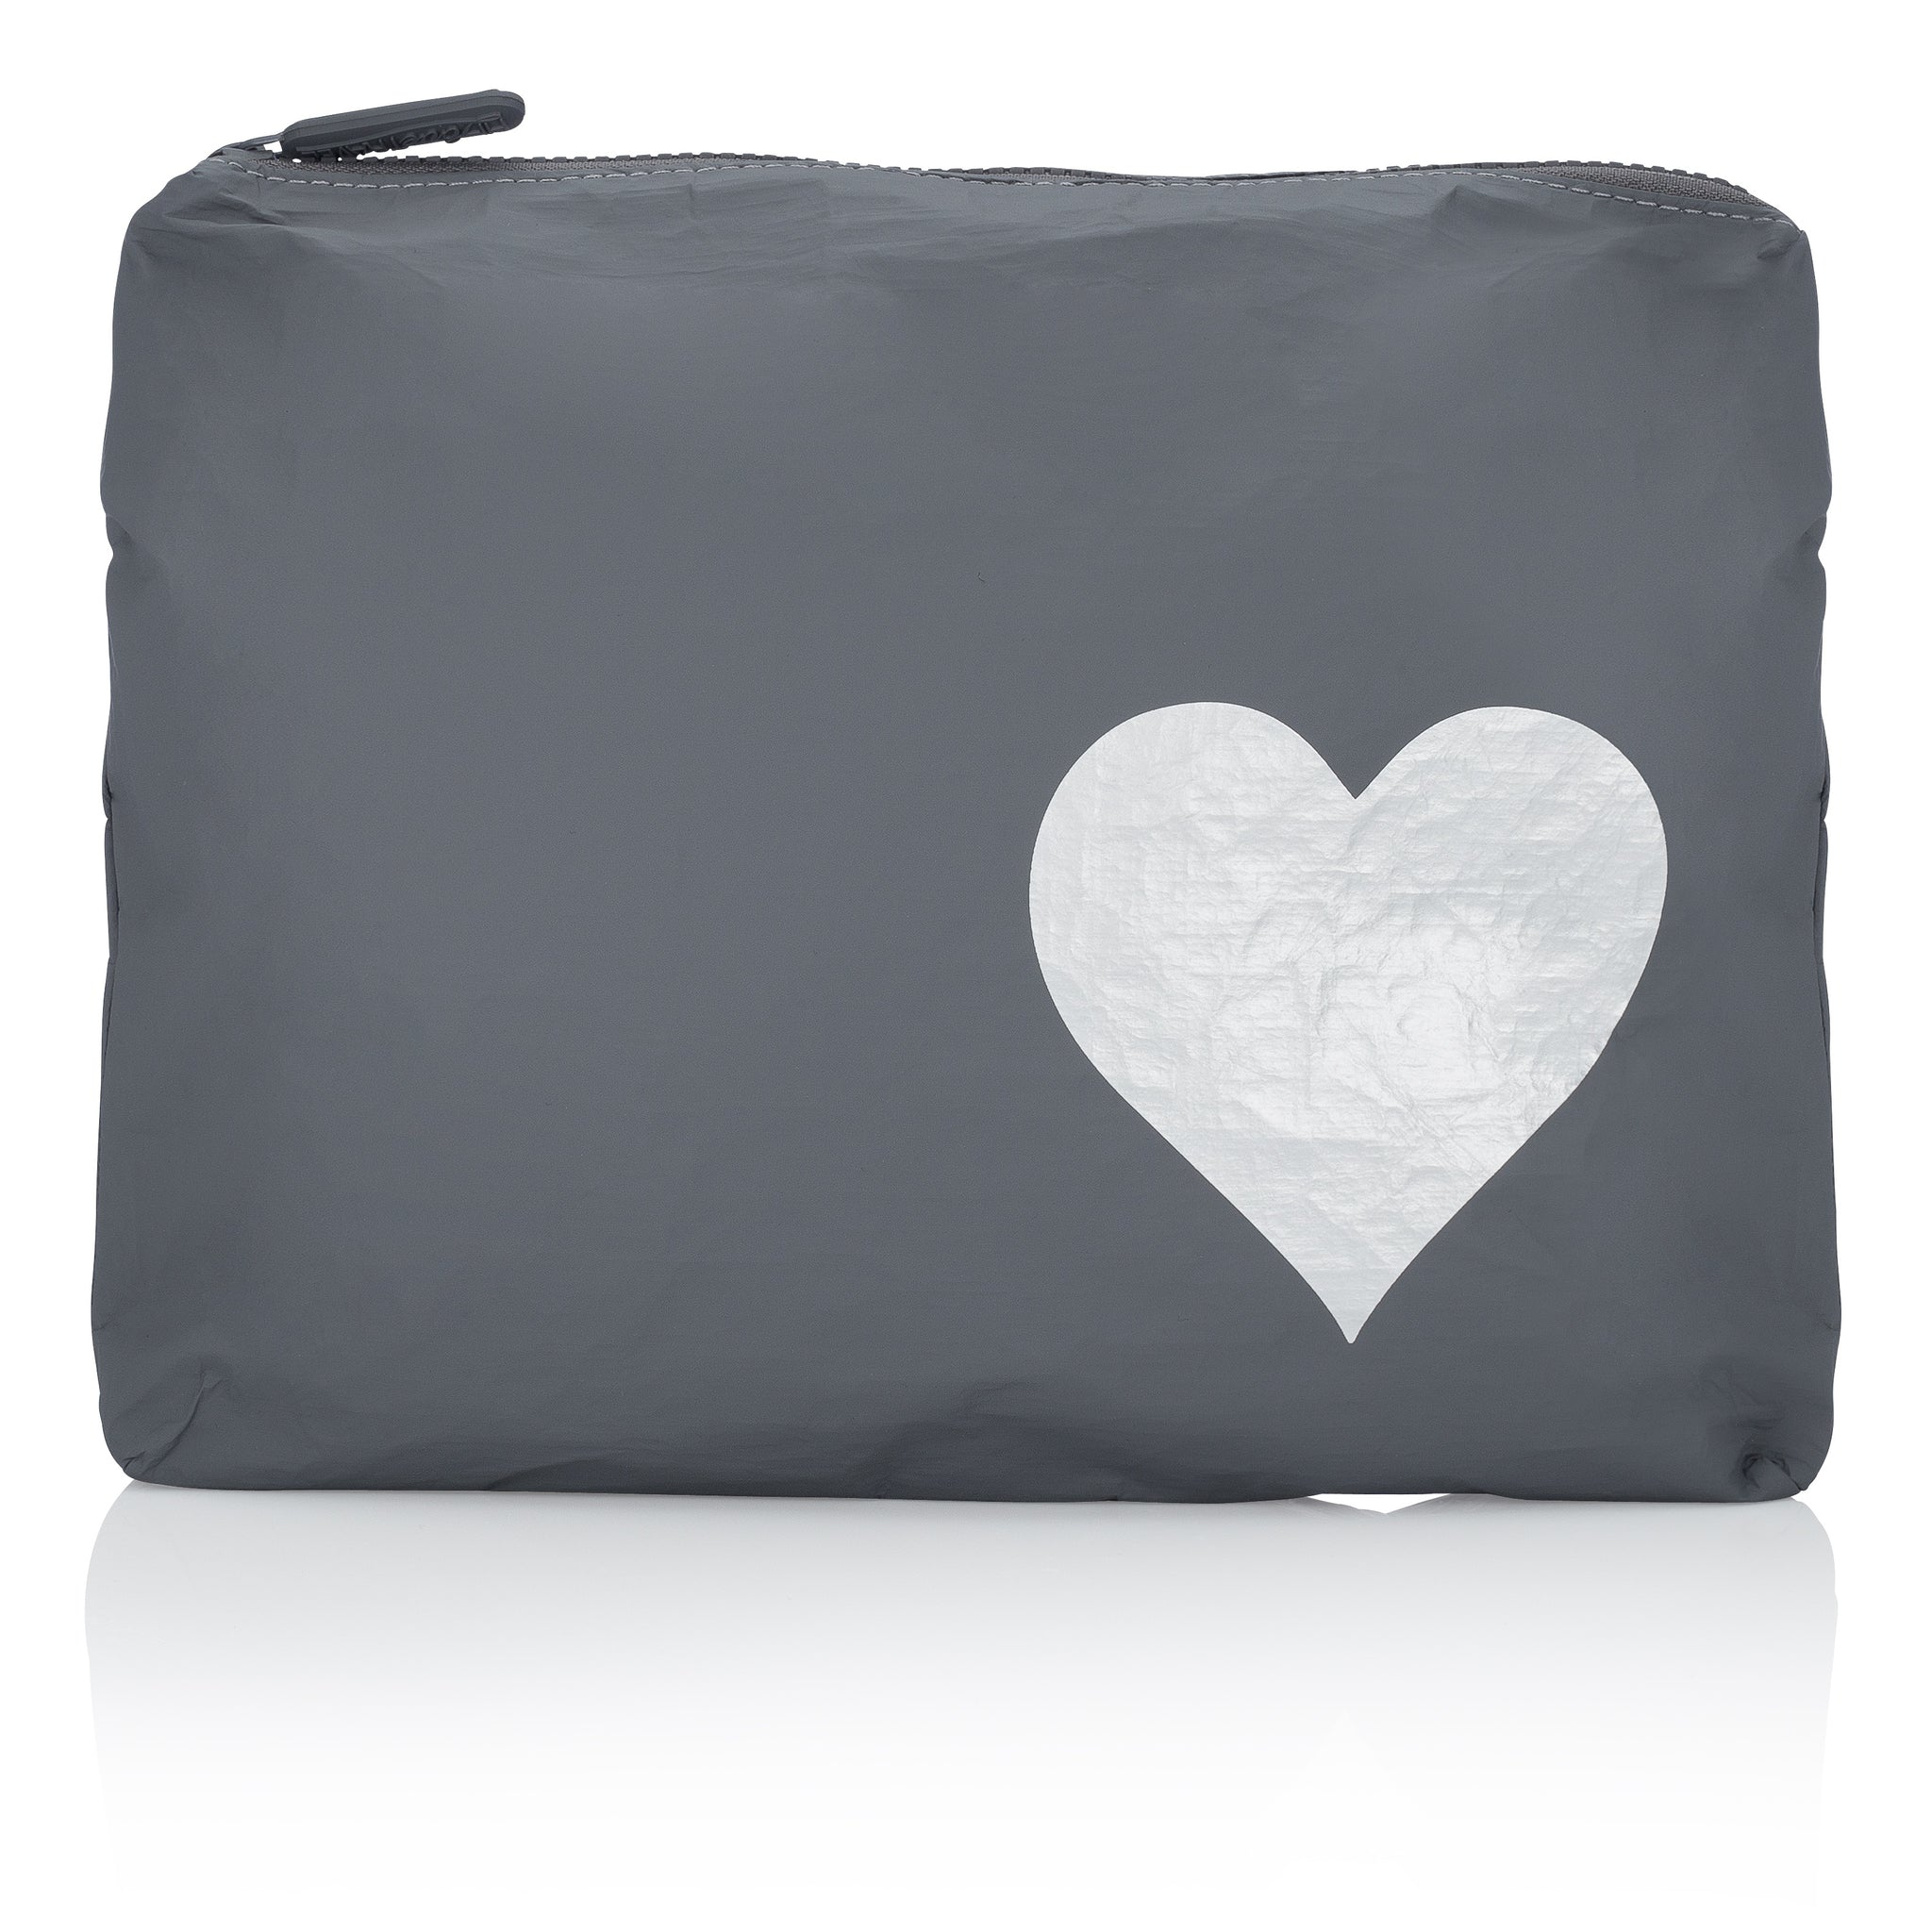 Medium Pack - Cool Gray HLT Collection with Silver Heart